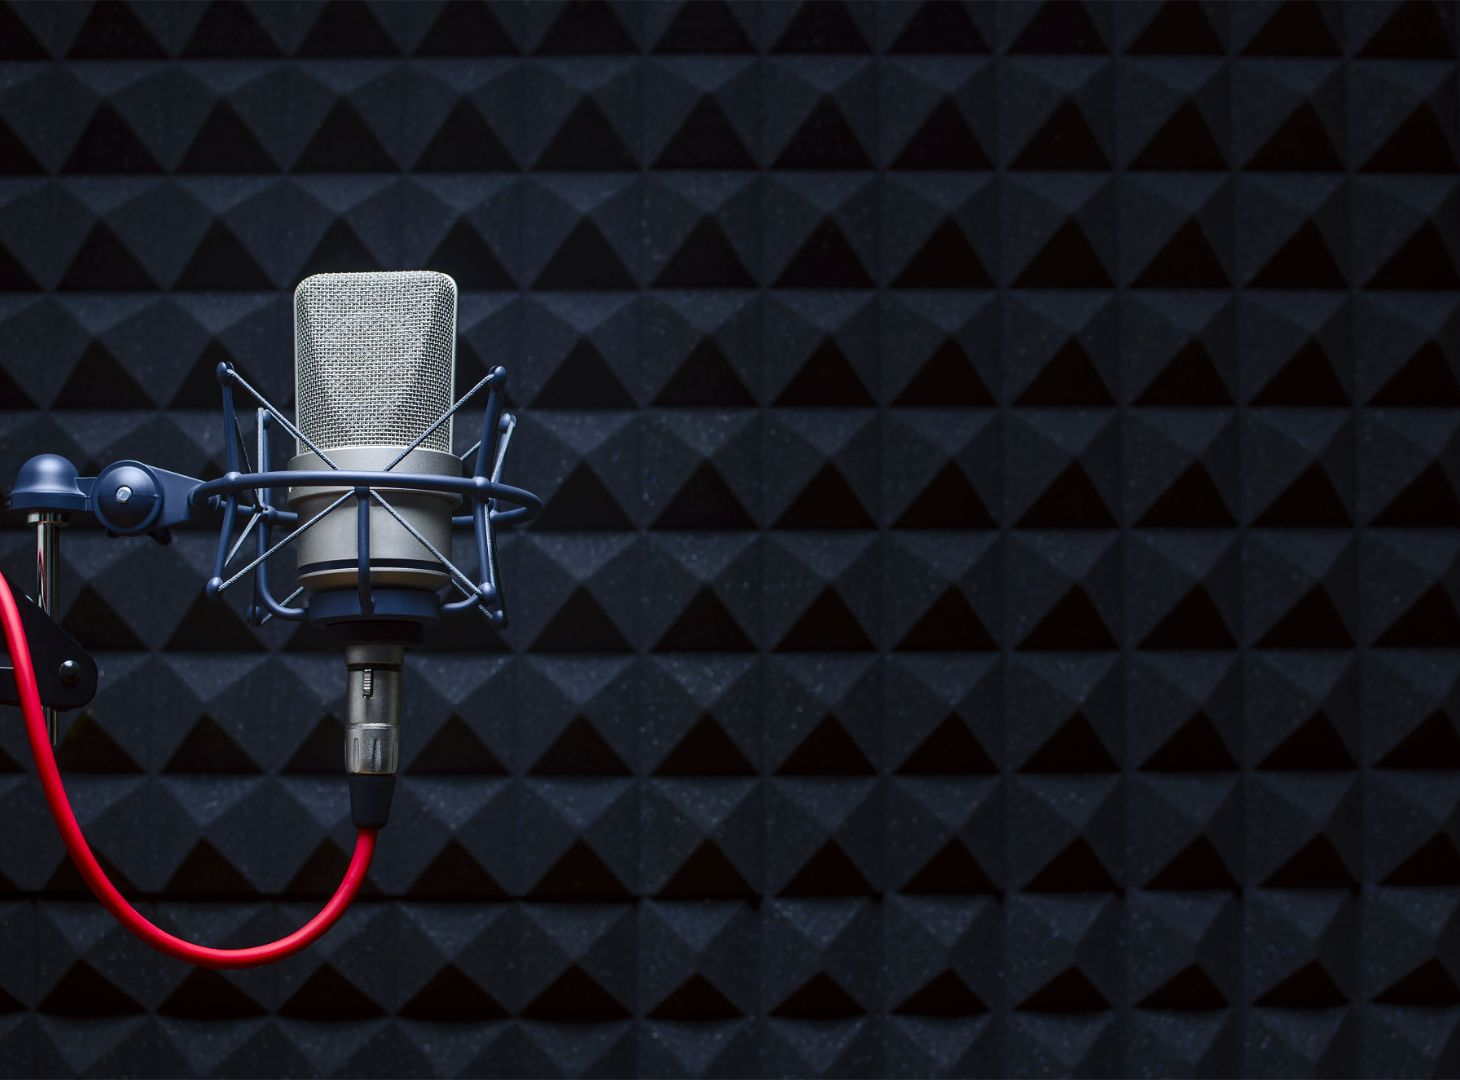 Microphone in soundproof booth